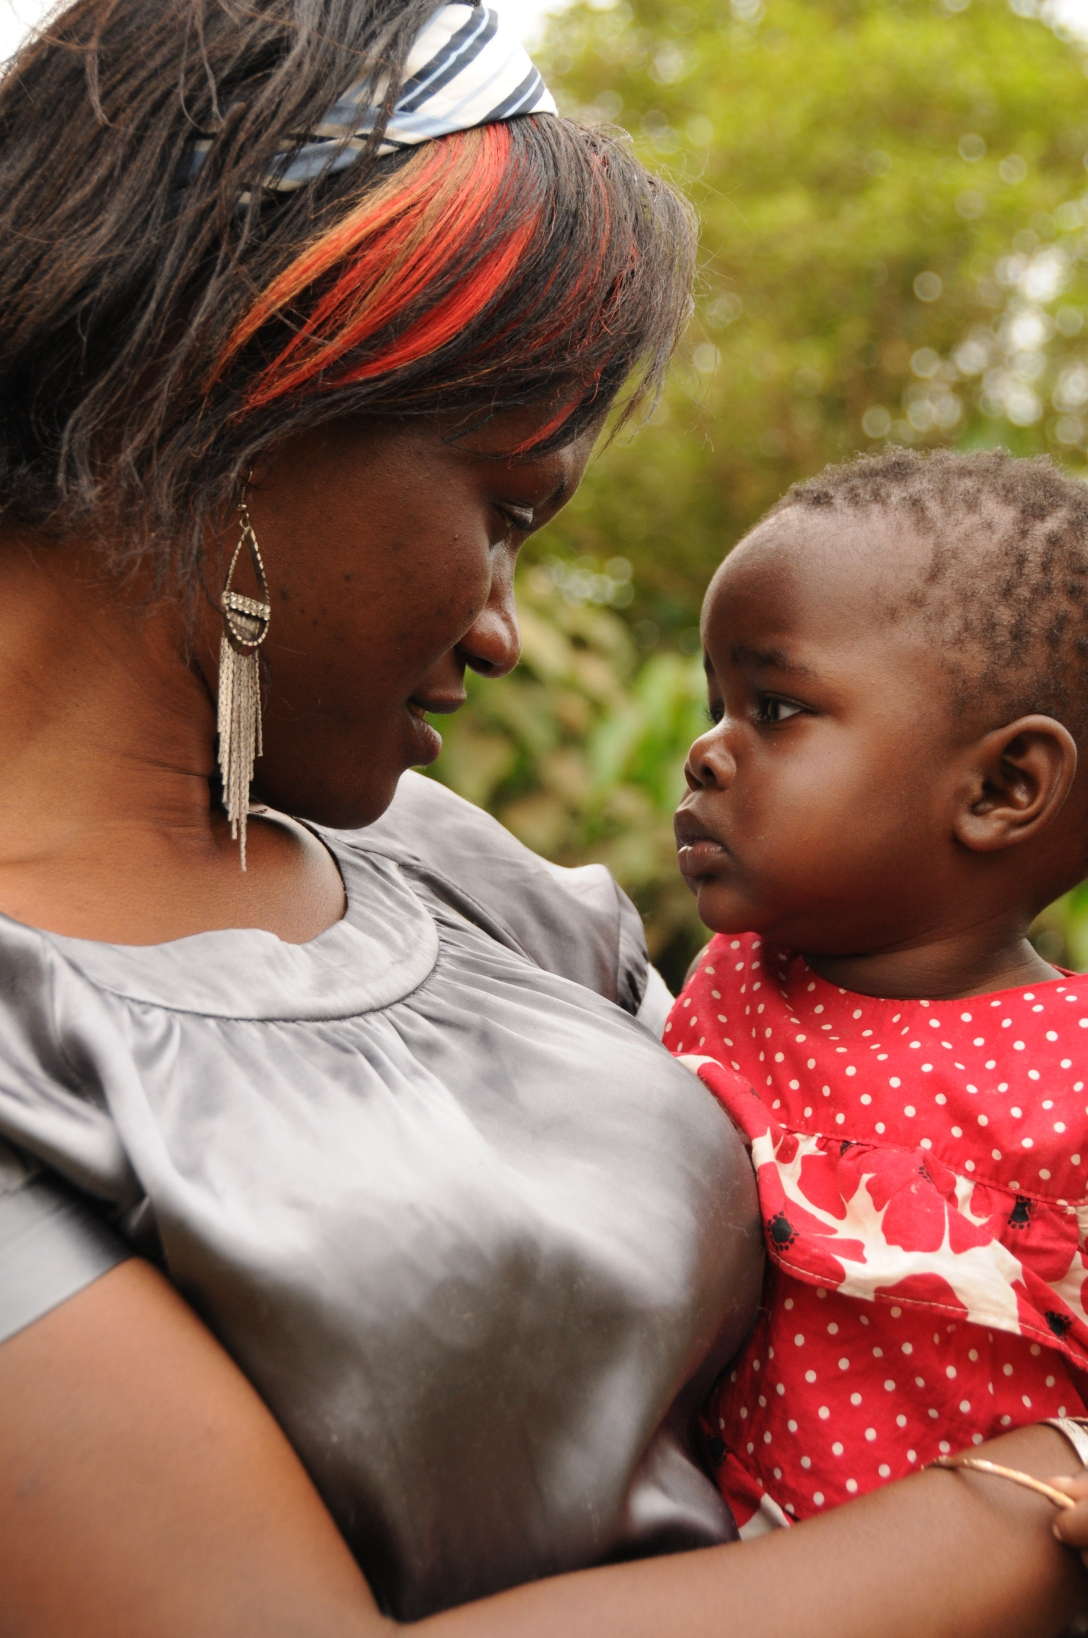 This is Phiona with baby Kira when we were in Uganda for our adoption.